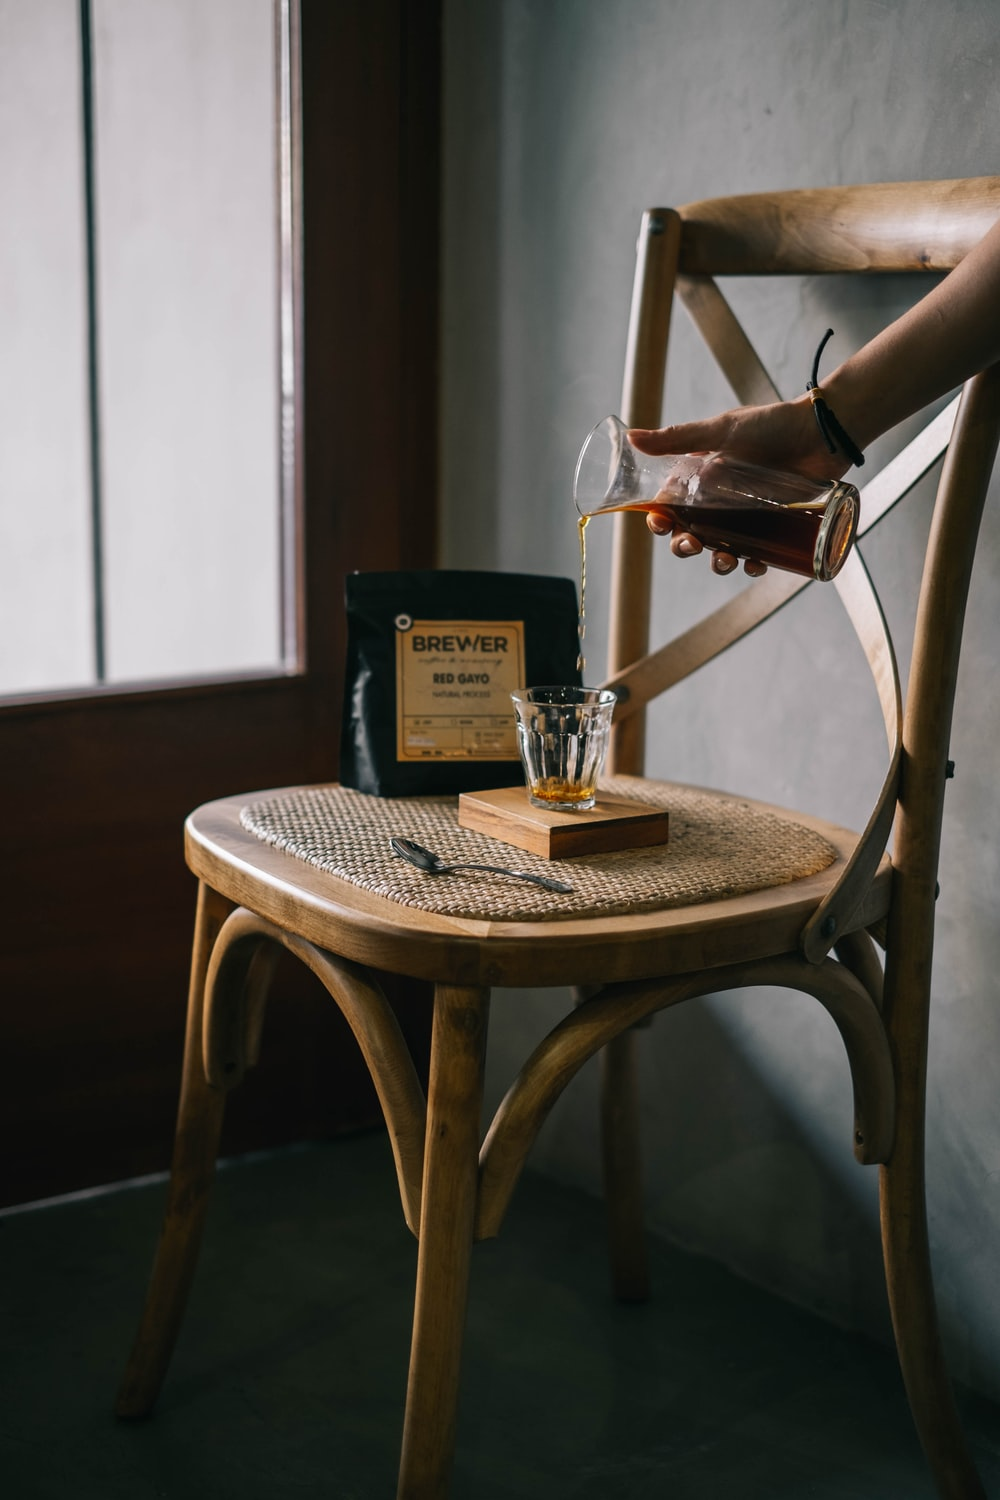 person holding clear glass decanter pouring a whiskey to a clear drinking glass cup on brown wooden chair near clear glass window in room